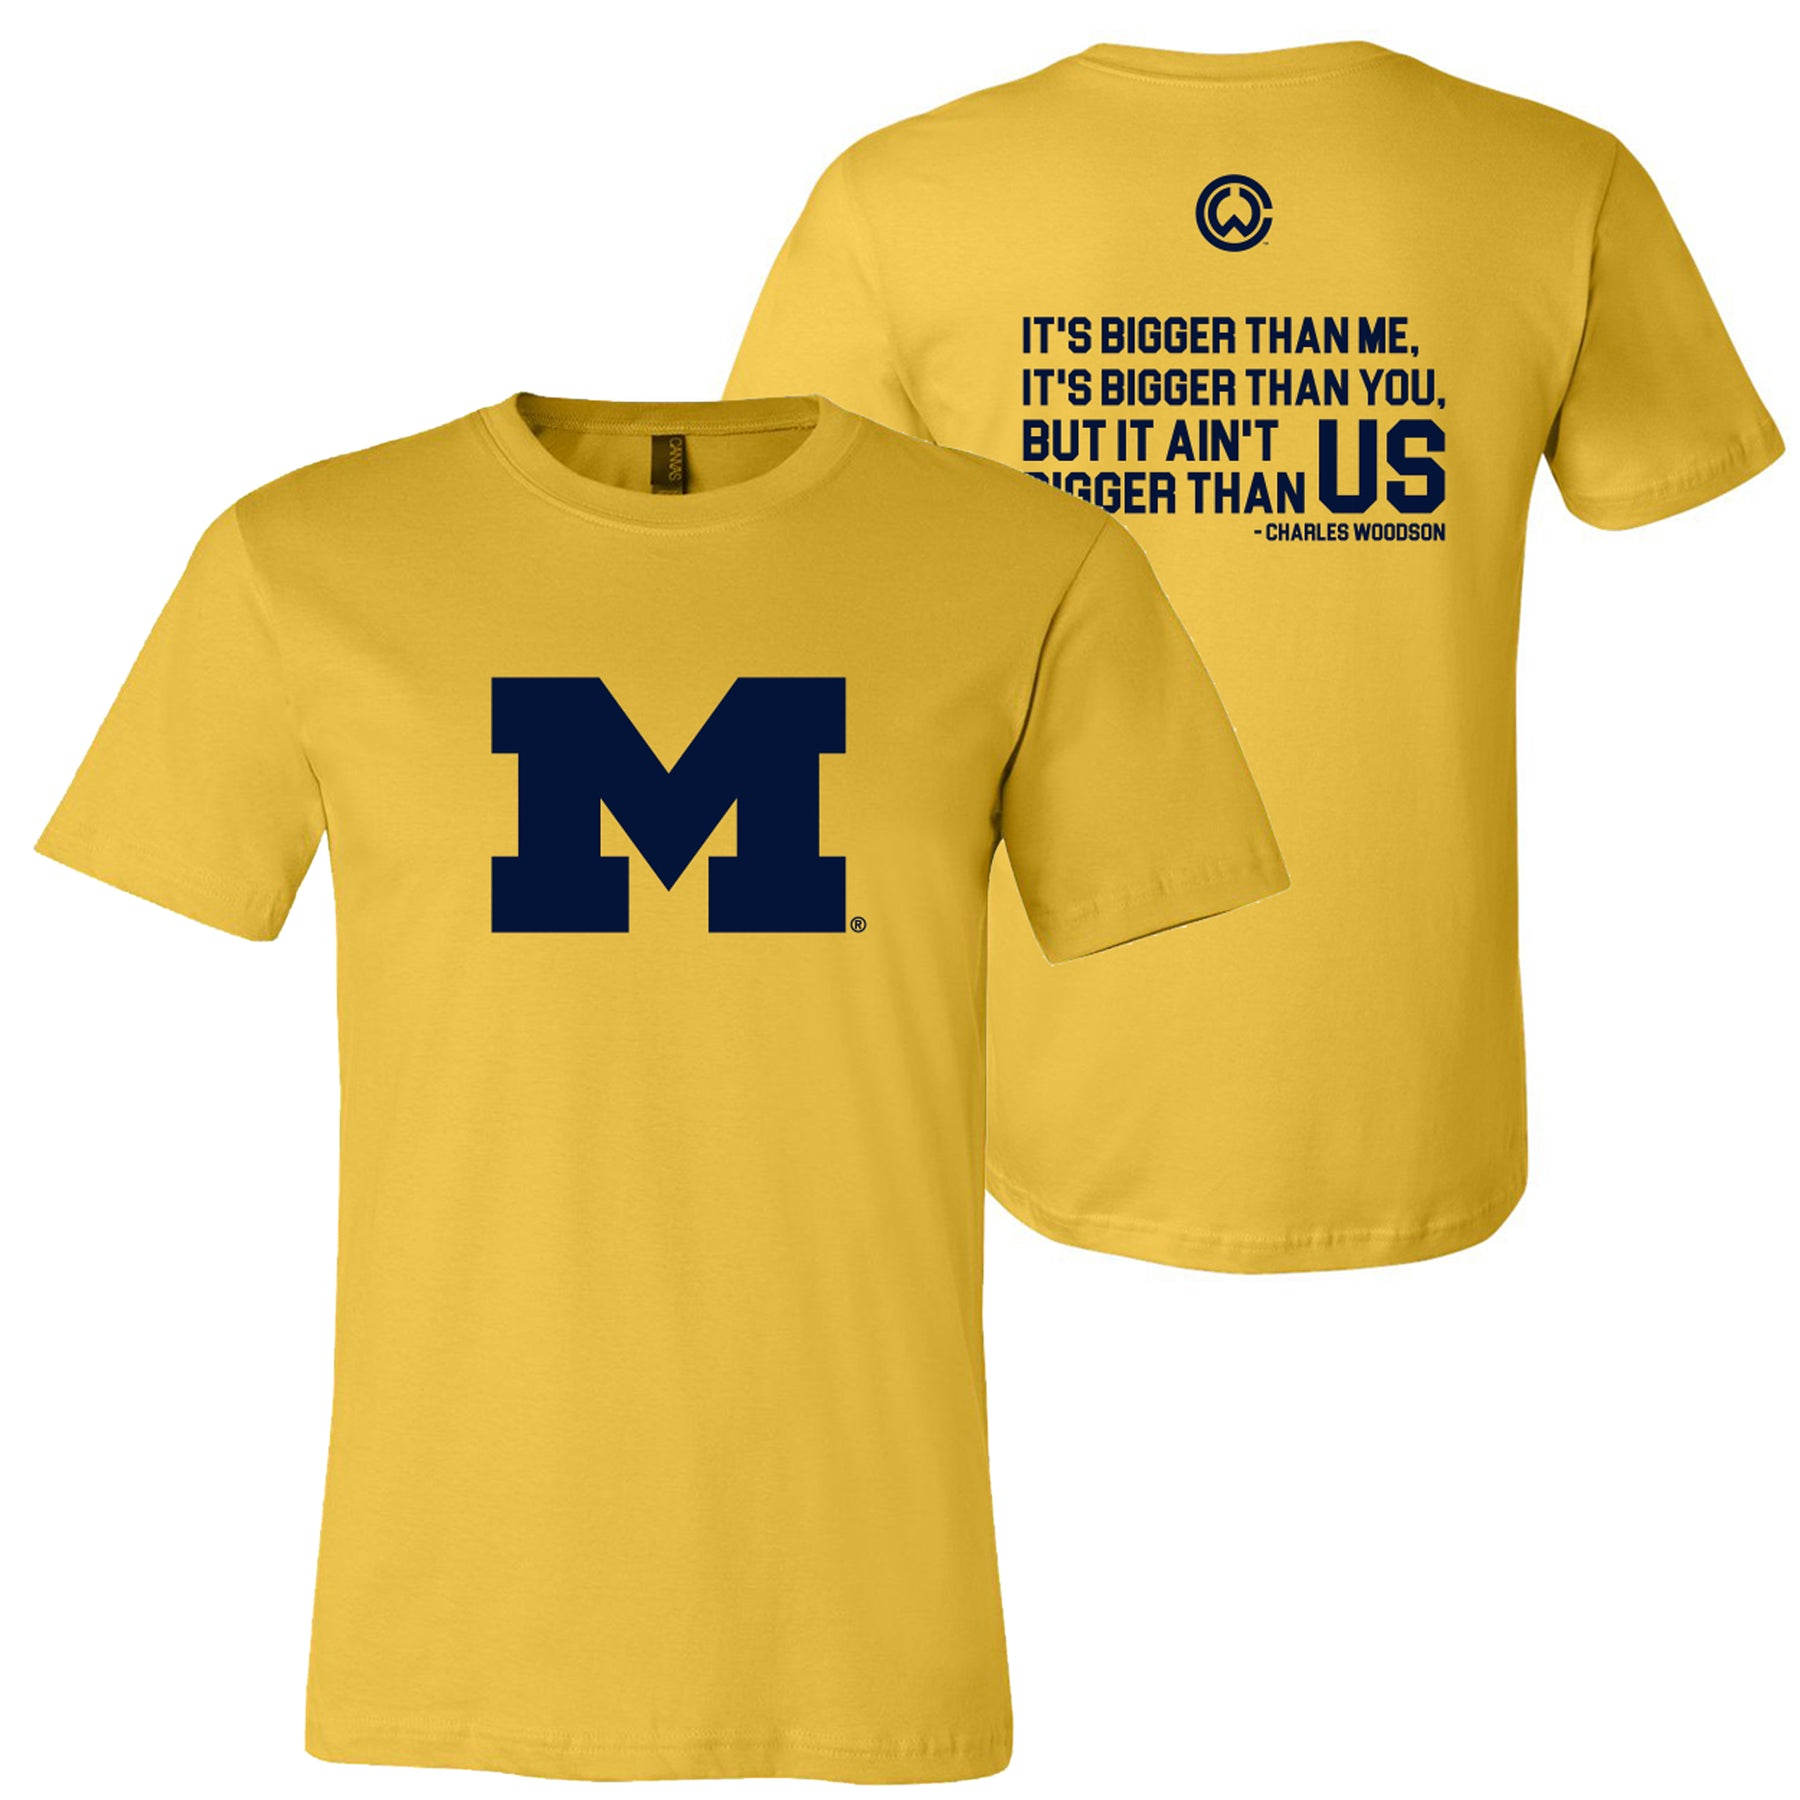 sports shoes 3cde2 d1712 Charles Woodson Bigger Quote University of Michigan Next Level Short Sleeve  T-Shirt - Maize